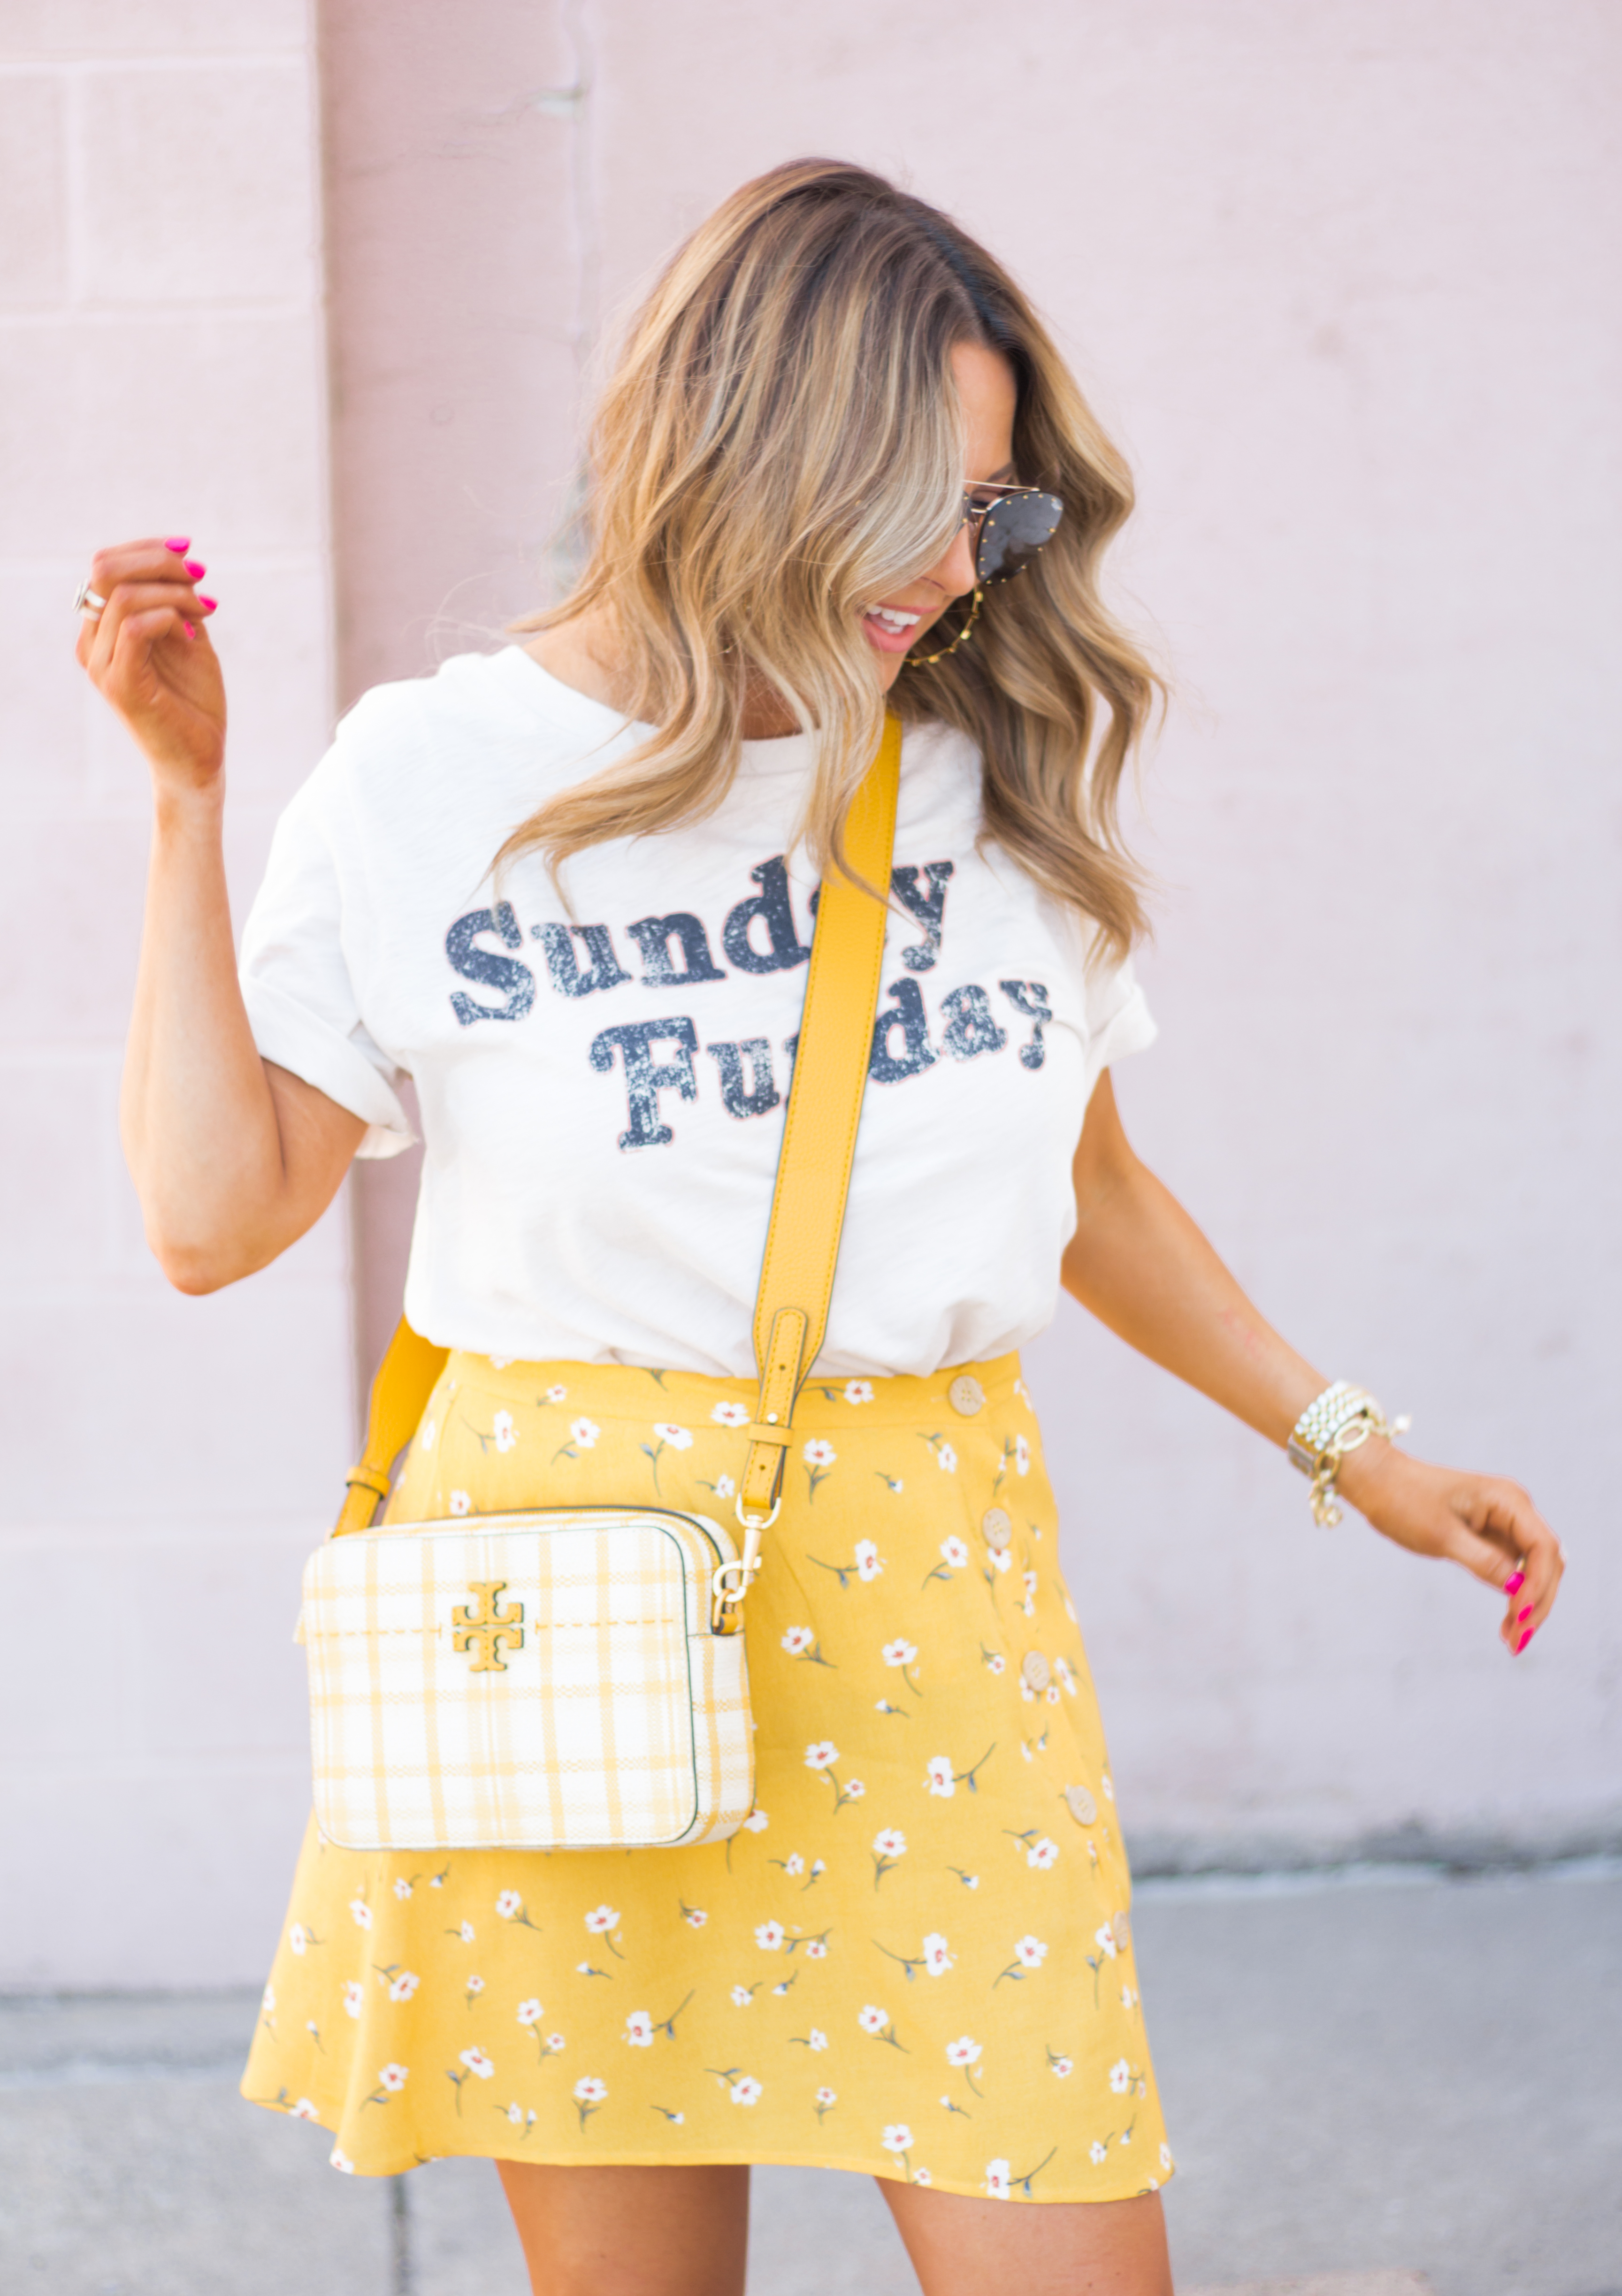 Sunday Funday-Graphic Tee-Floral Skirt-Mini Skirt-Spring Fashion-Spring Style-Tory Burch Purse-Quay Sunglasses-Tan Wedges-Espadrilles-Yellow-Colorful Style-Sabby Style-Women's Fashion-Omaha Blog-Omaha Blogger-2